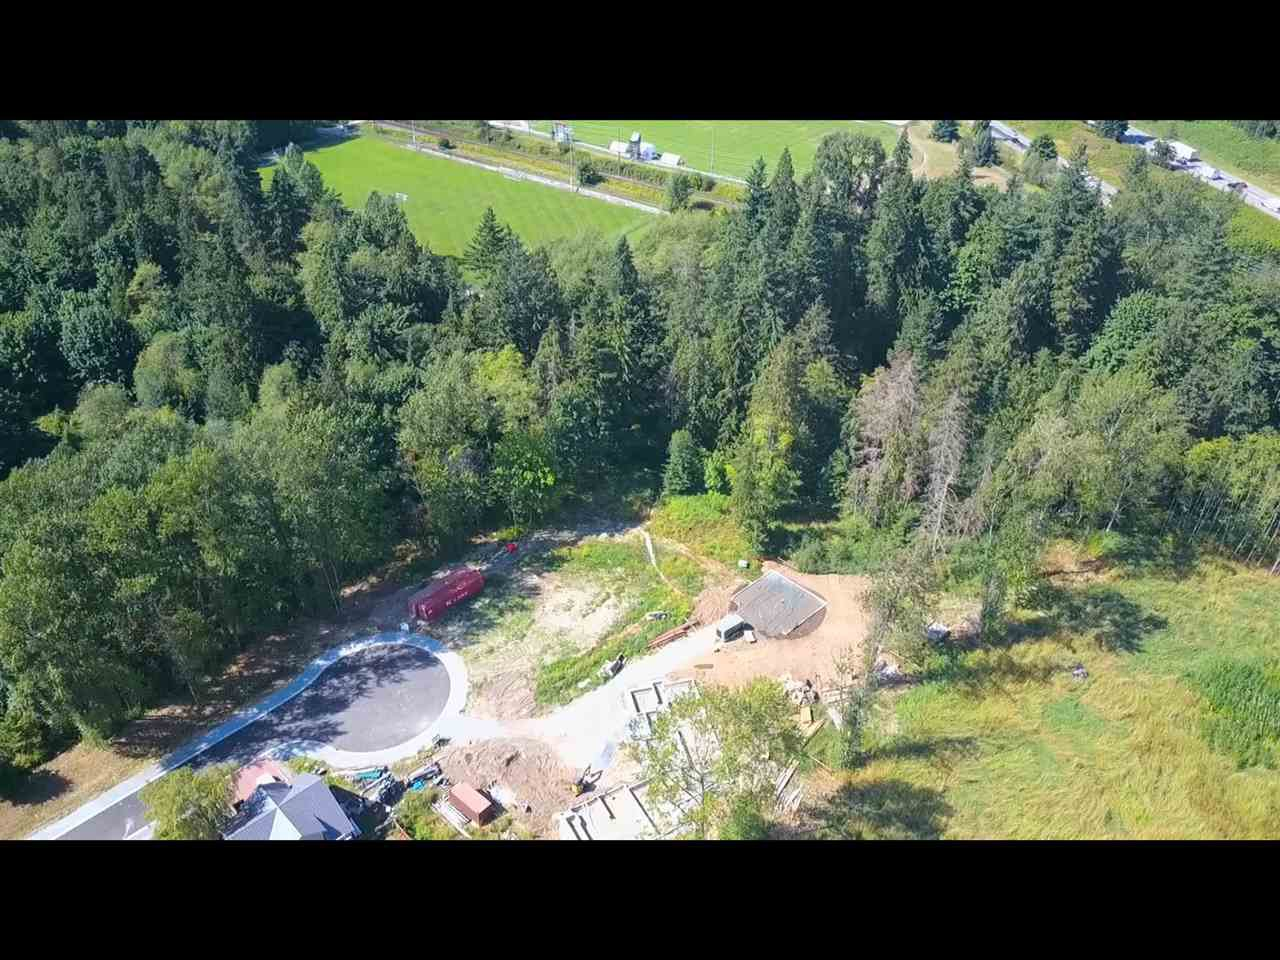 Photo 5: Photos: 7457 228 Street in Langley: Salmon River Land for sale : MLS®# R2215780